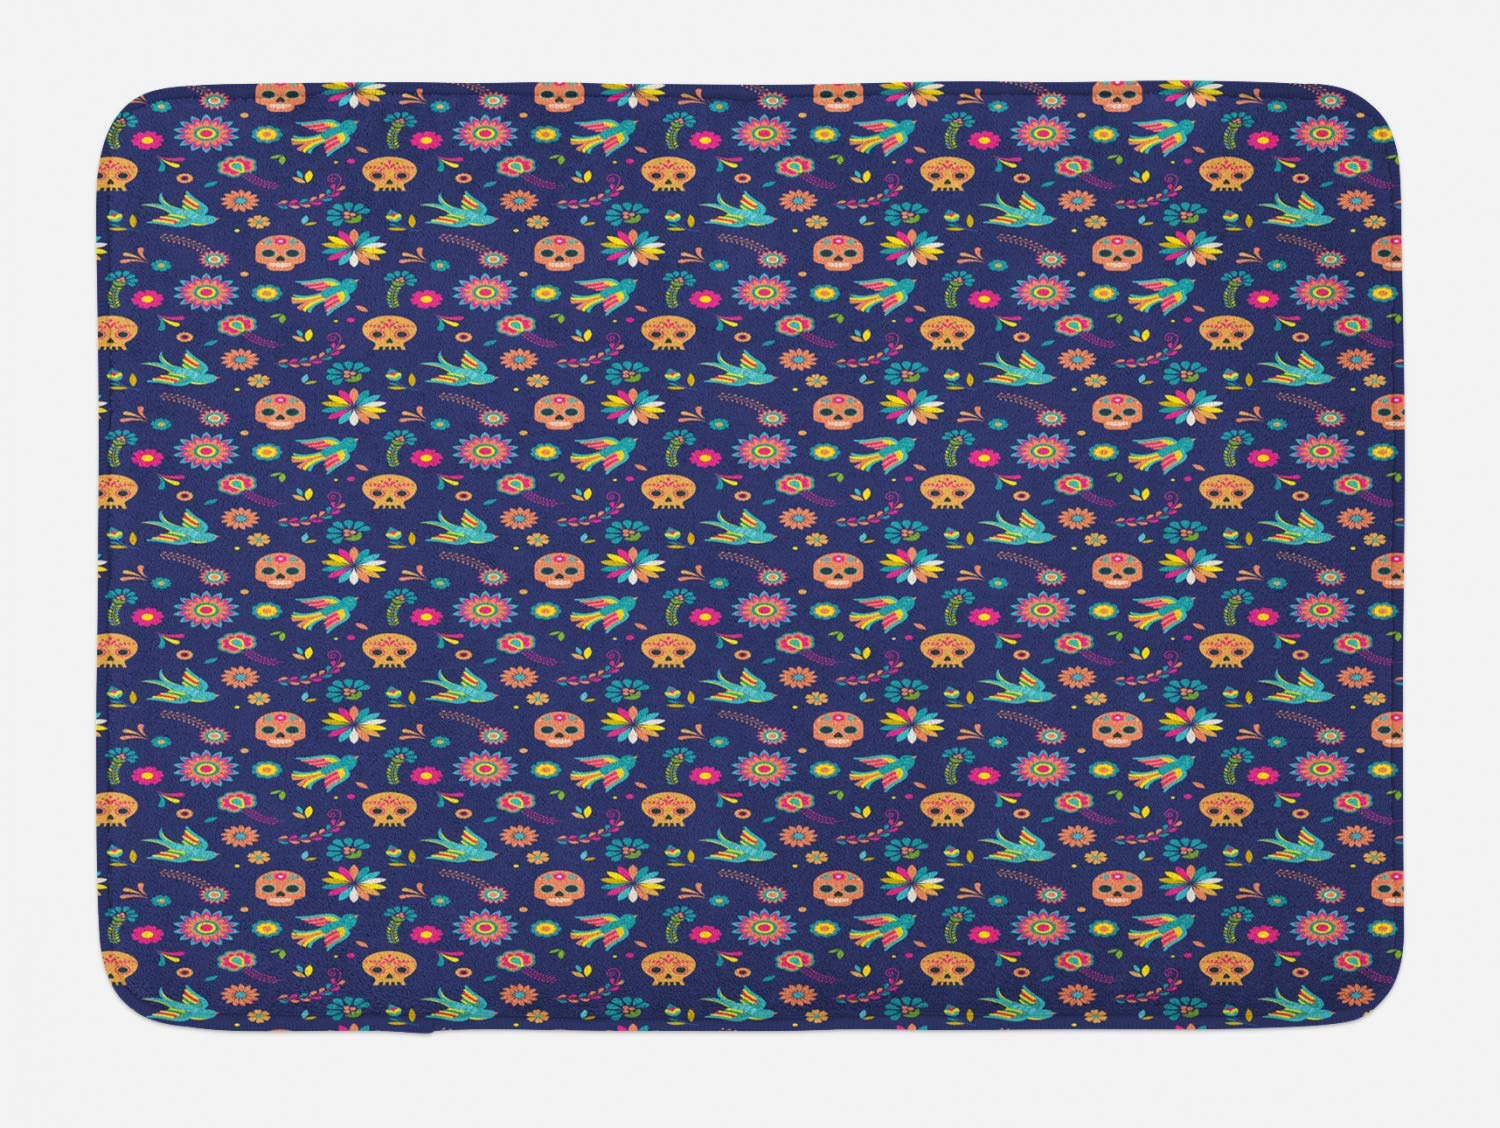 Lohebhuic Repeating Sweet Floral Mexican Pattern Sugar Skulls and Swallows Plush Bathroom Decor Mat with Non Slip Backing,46.8'' W by 70.98'' L